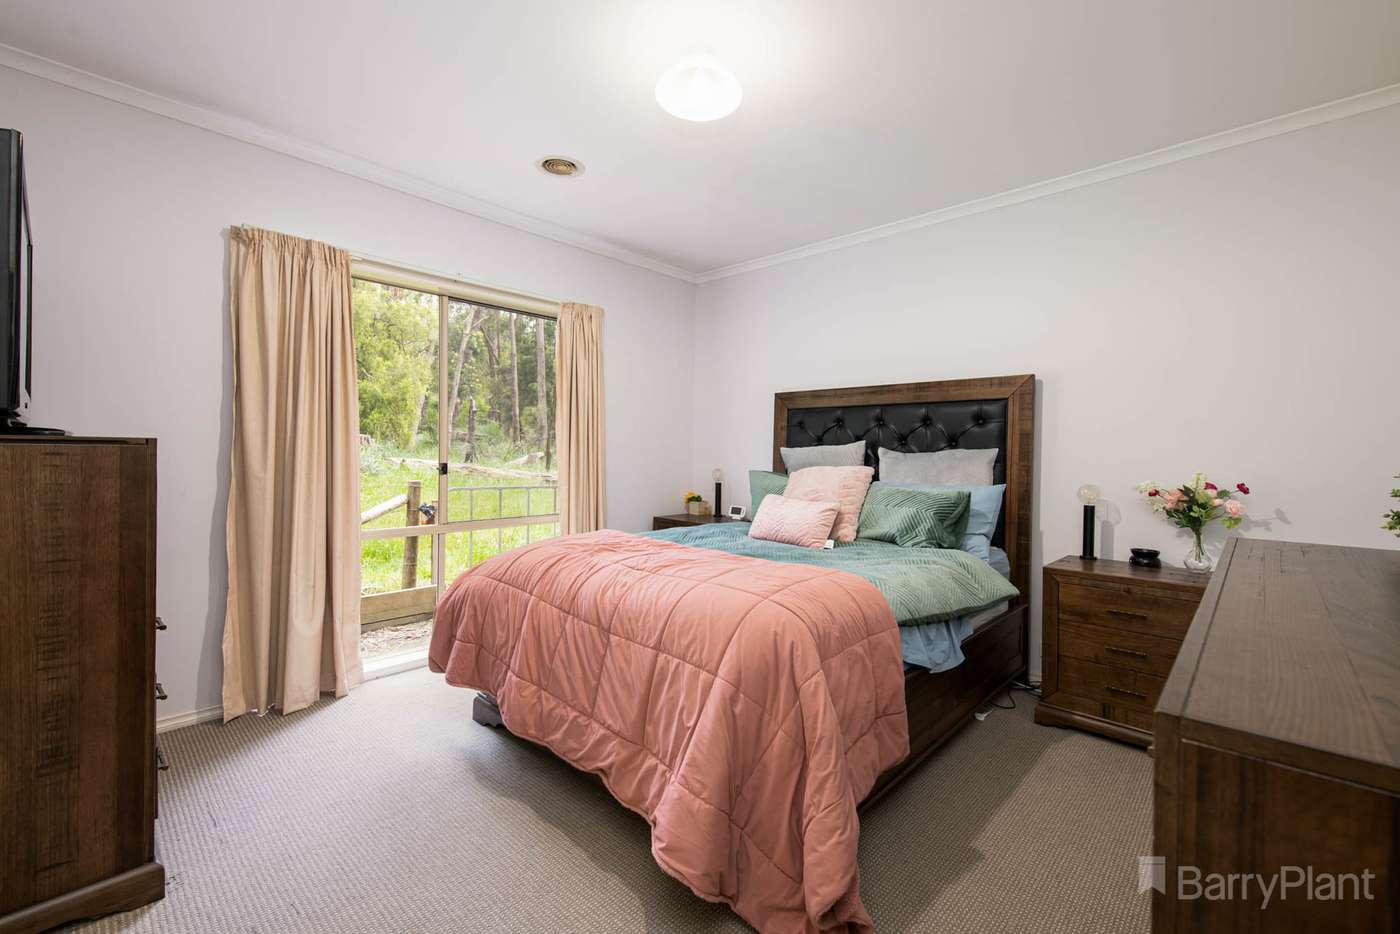 Seventh view of Homely house listing, 2/26 Donday Court, Pakenham VIC 3810